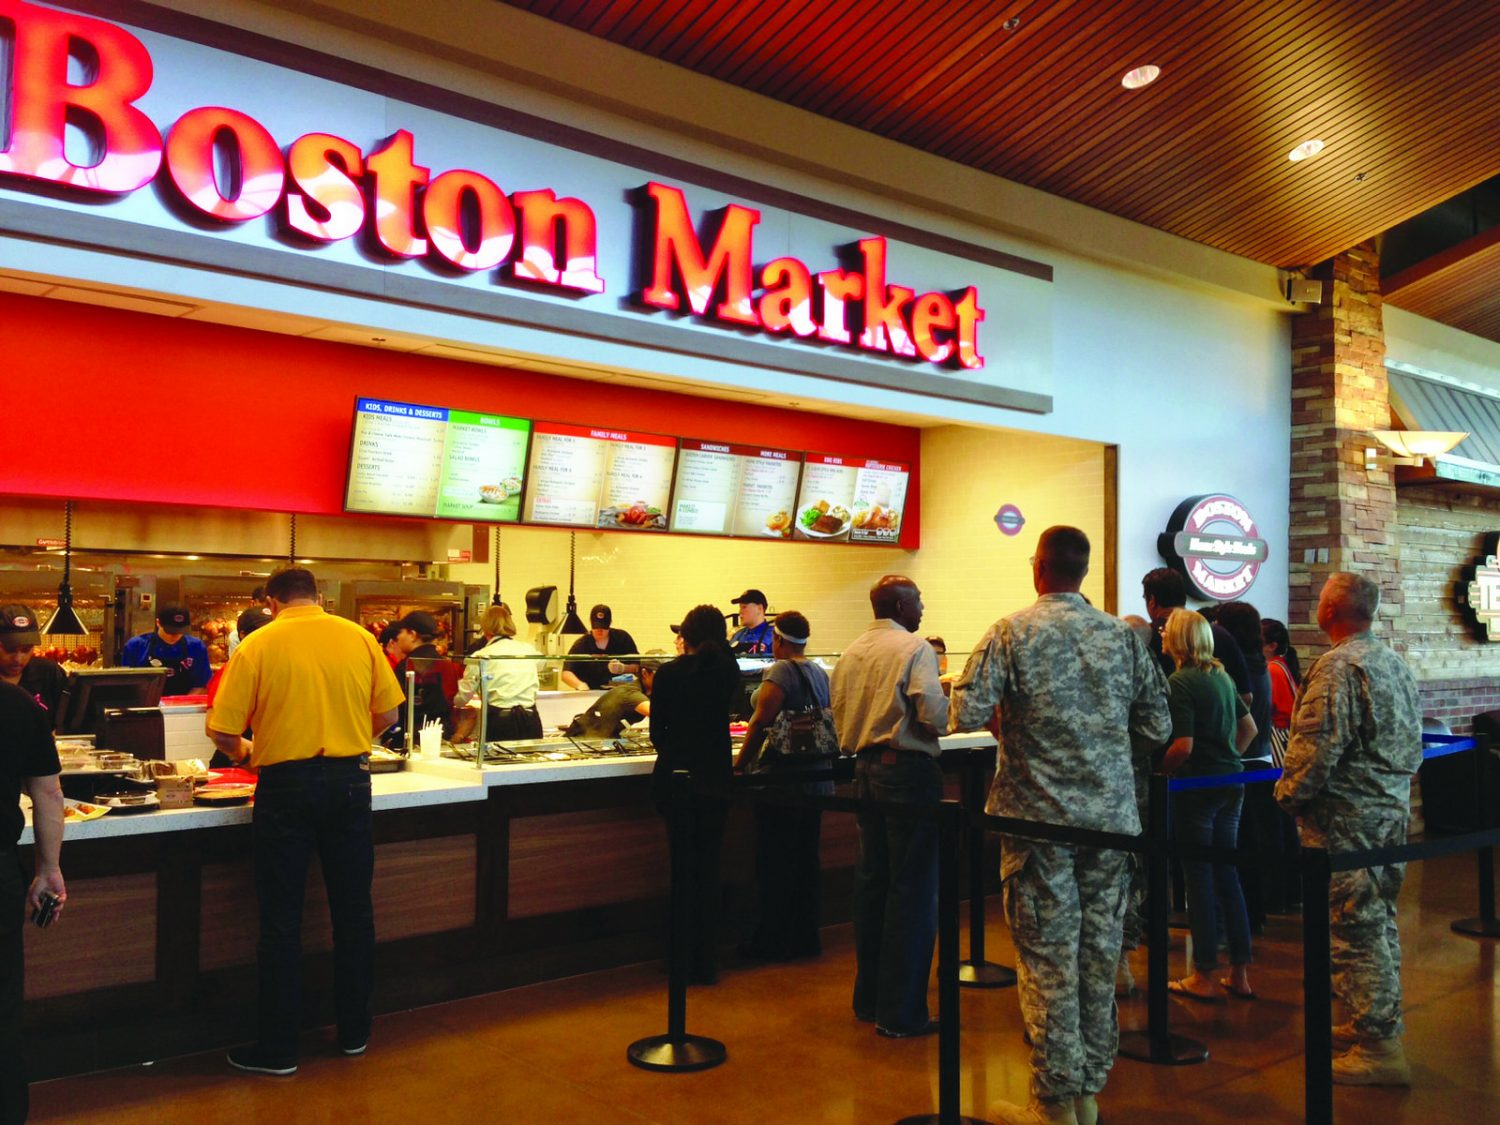 The growing presence of Boston Markets in Exchange food courts symbolized the Defense Department's largest retailer's efforts to expand the number of brand-name restaurants that have better-for-you options for Soldiers, Airmen and their families.